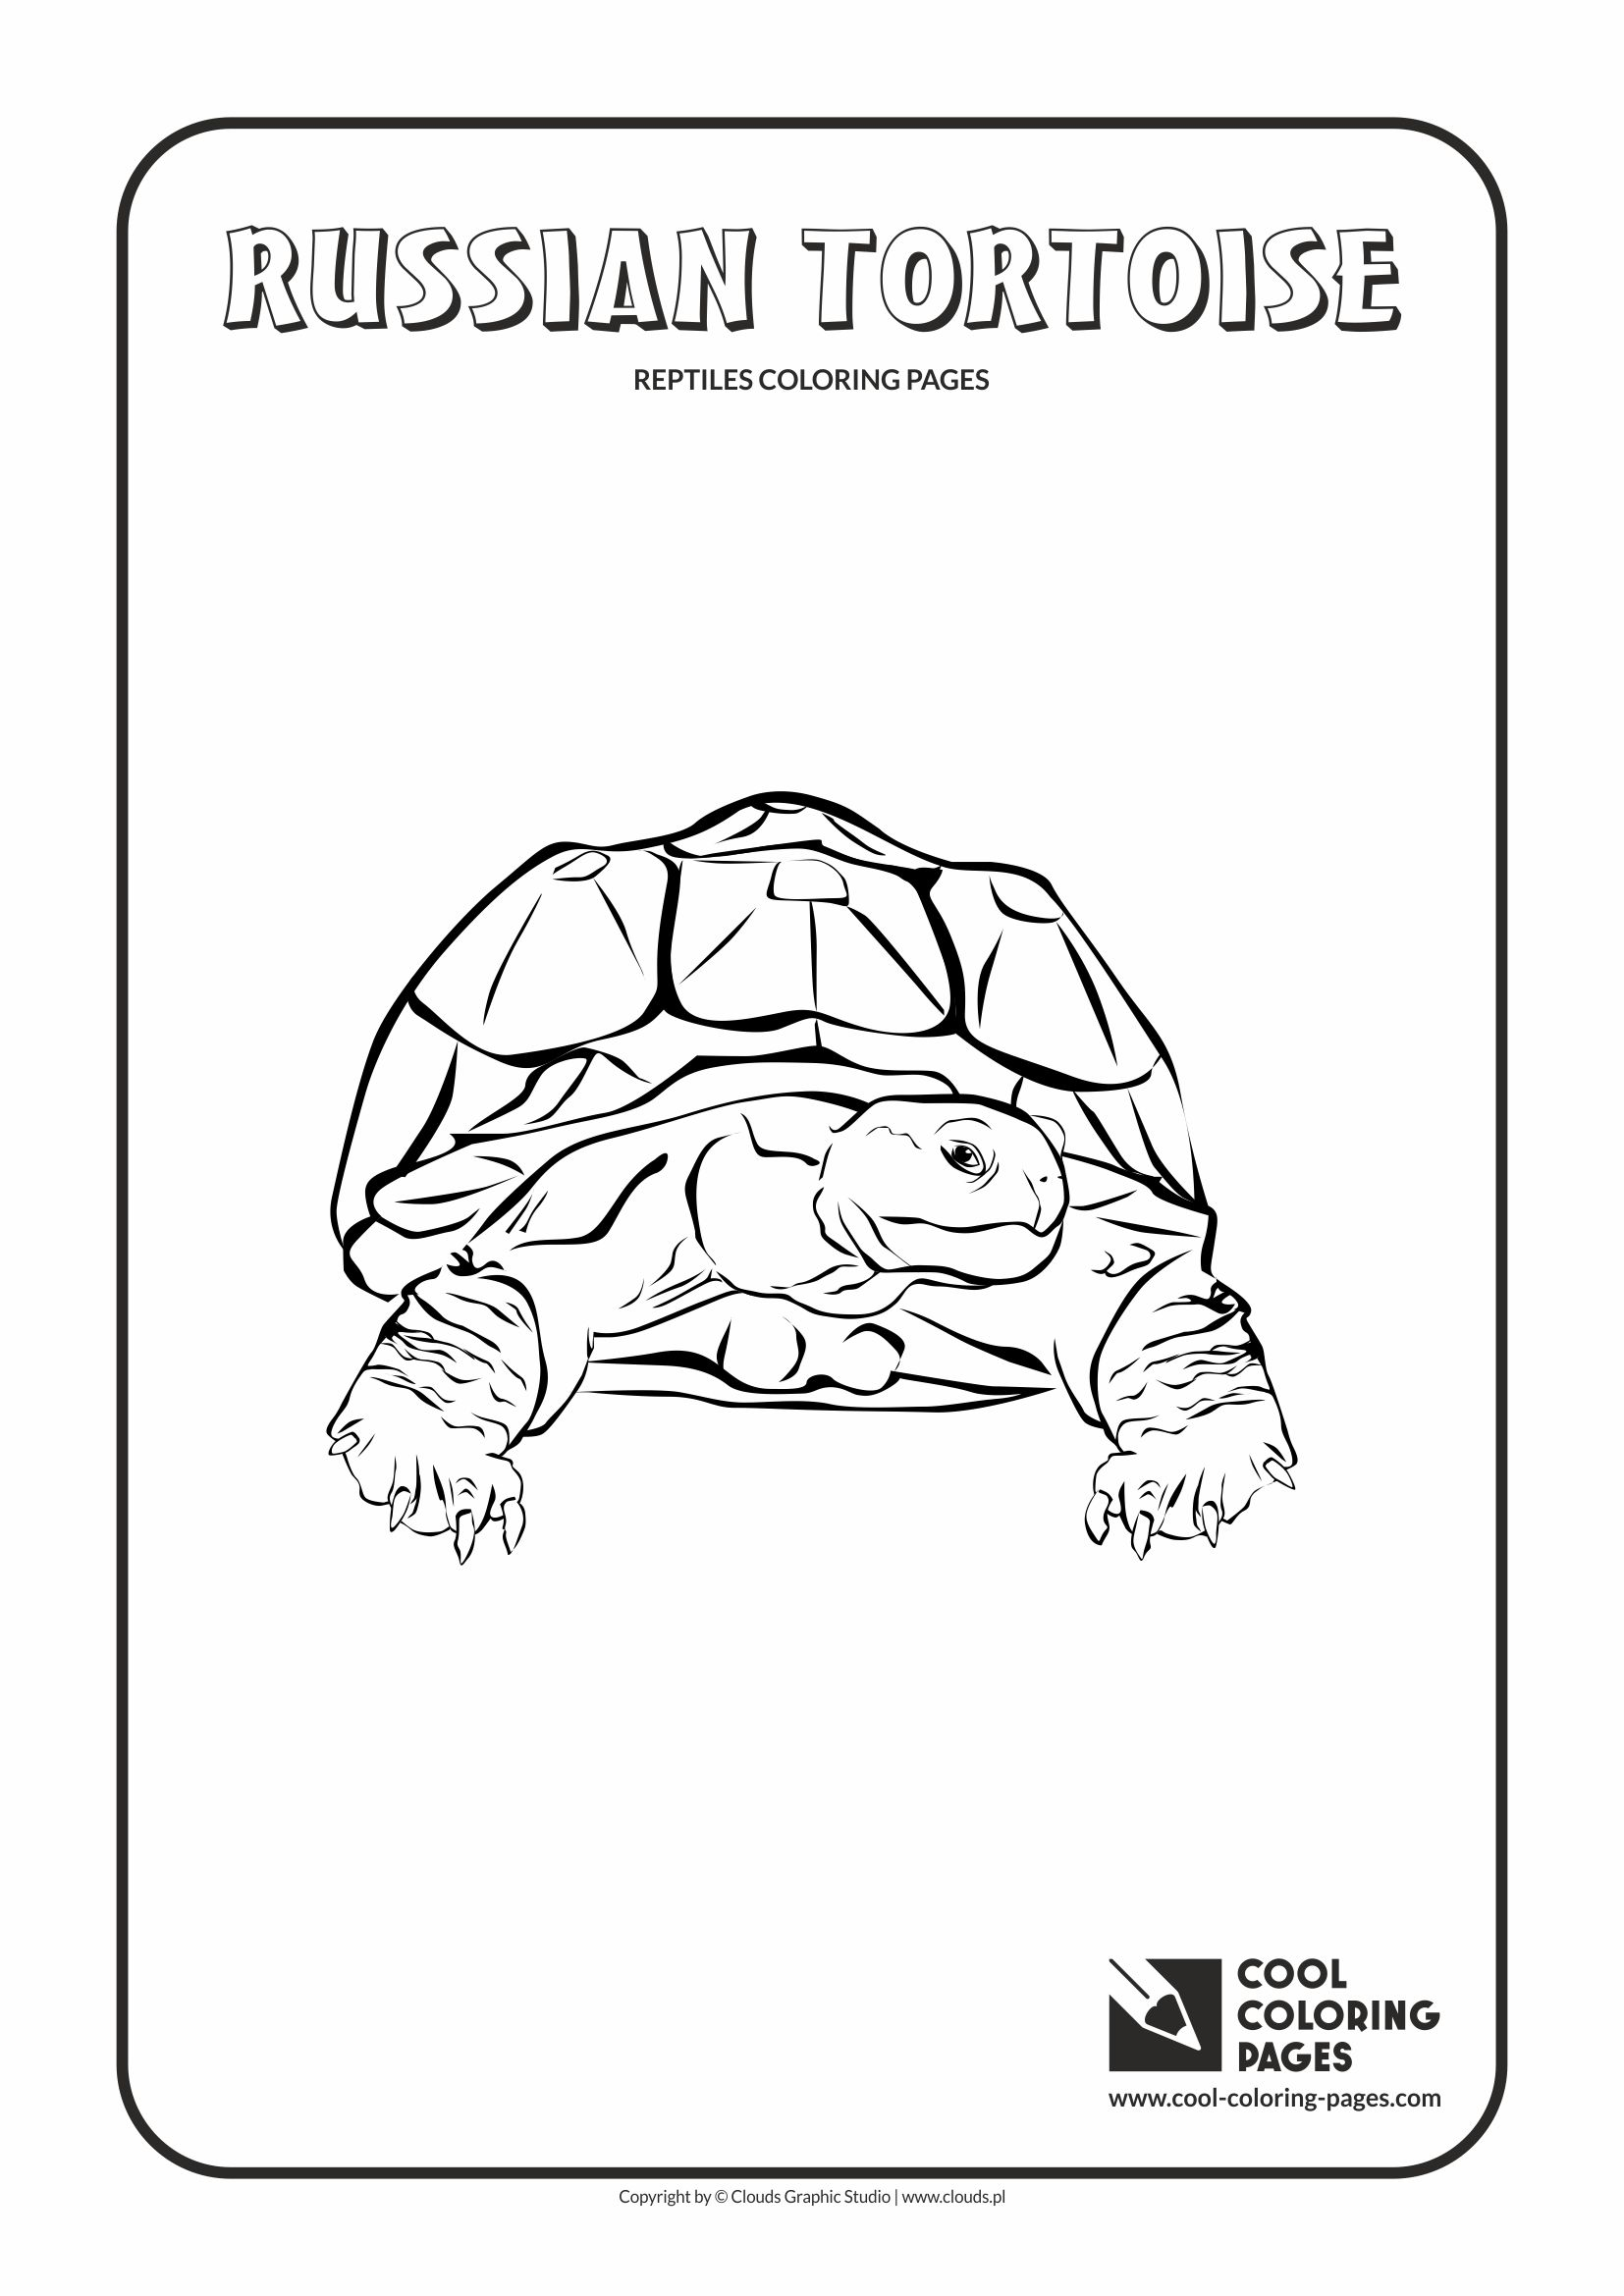 russian tortoise coloring page cool coloring pages